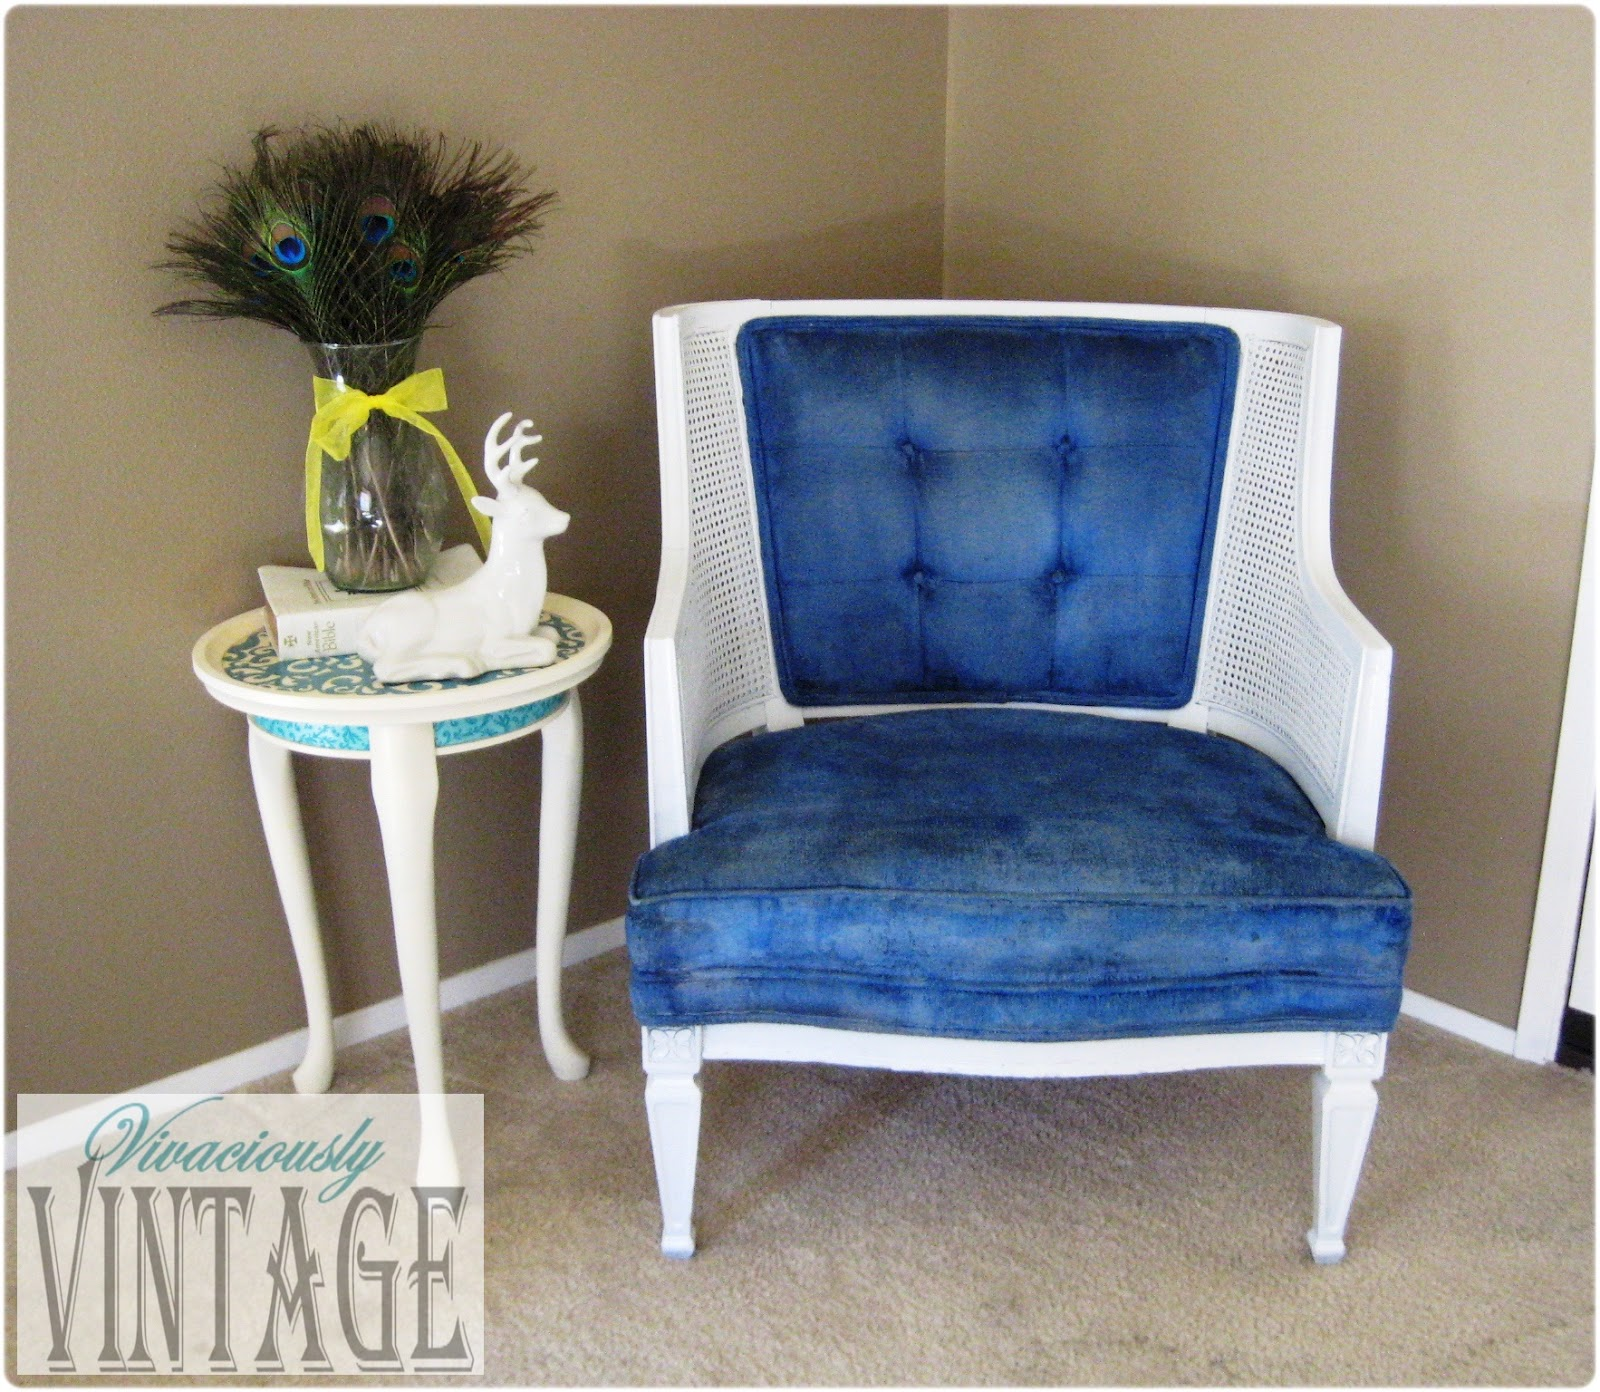 Blue And White Chair Ansley Designs Vintage Royal Blue And White Tufted Chair